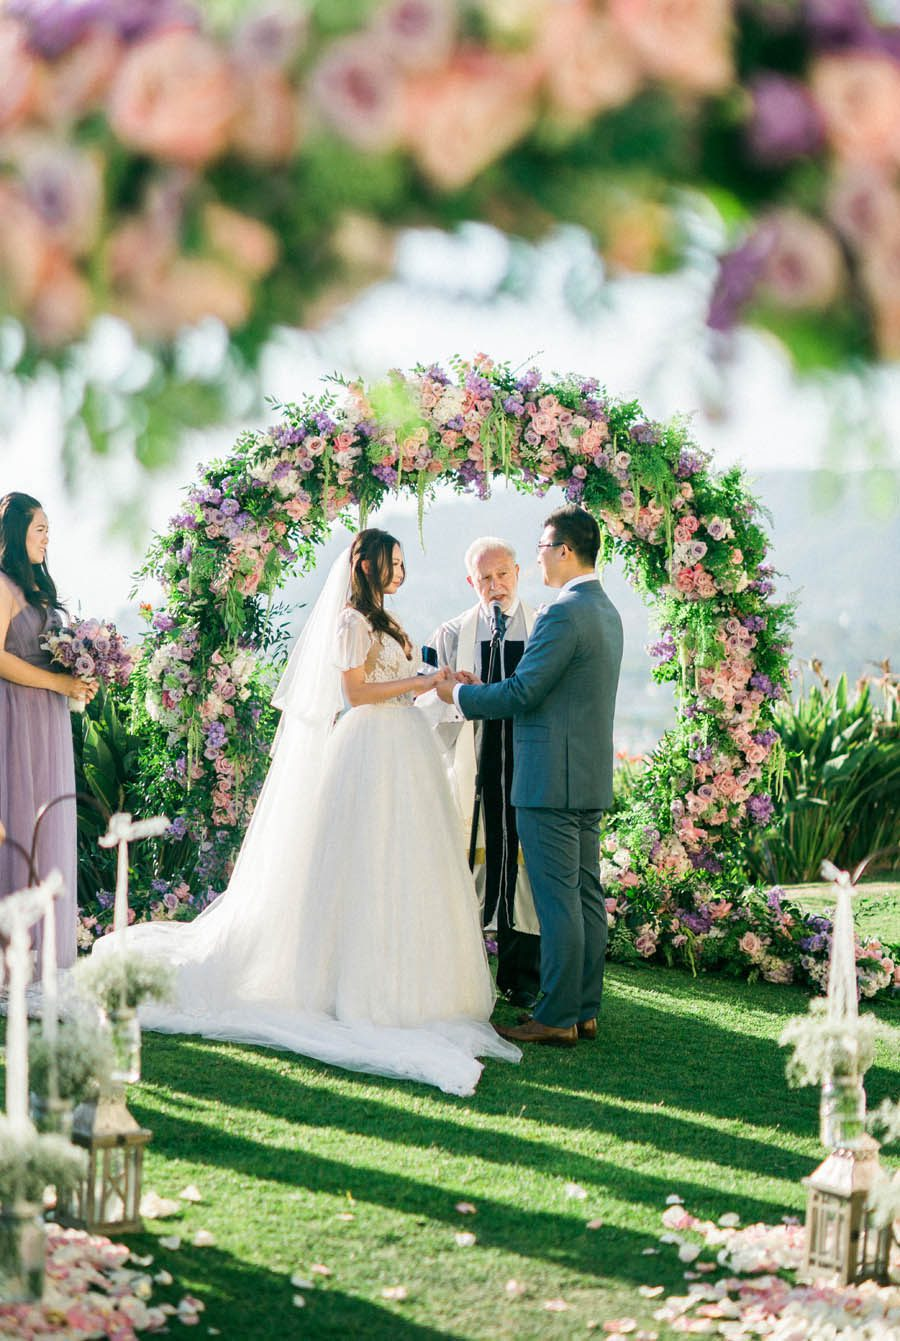 Ultra Violet Pantone Color Of The Year Wedding Featured in Belle the Magazine